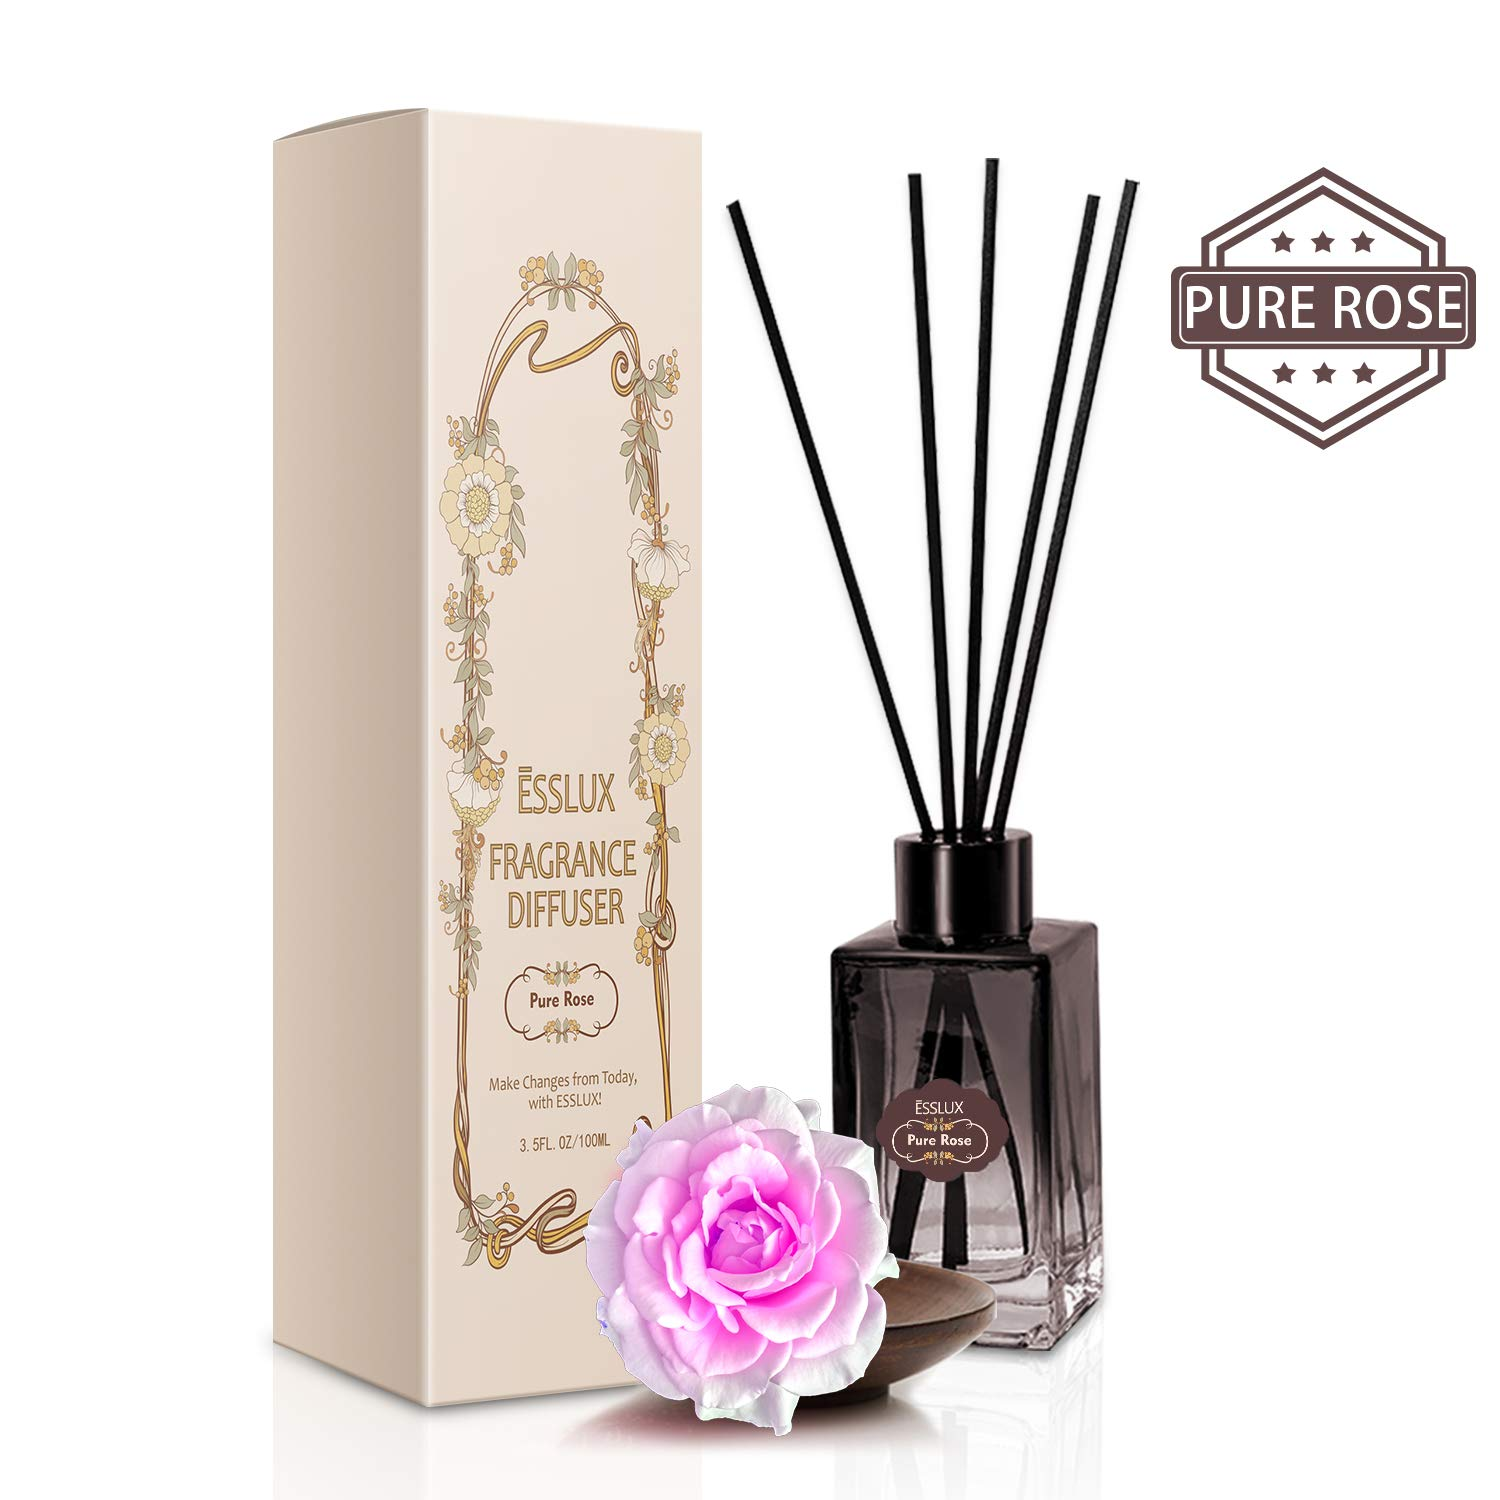 ESSLUX Scent Diffuser, Room Reed Diffuser Premium Quality for Home and Office, Air Freshener & Home Decor & Ideal Gift-Pure Rose by ESSLUX (Image #1)